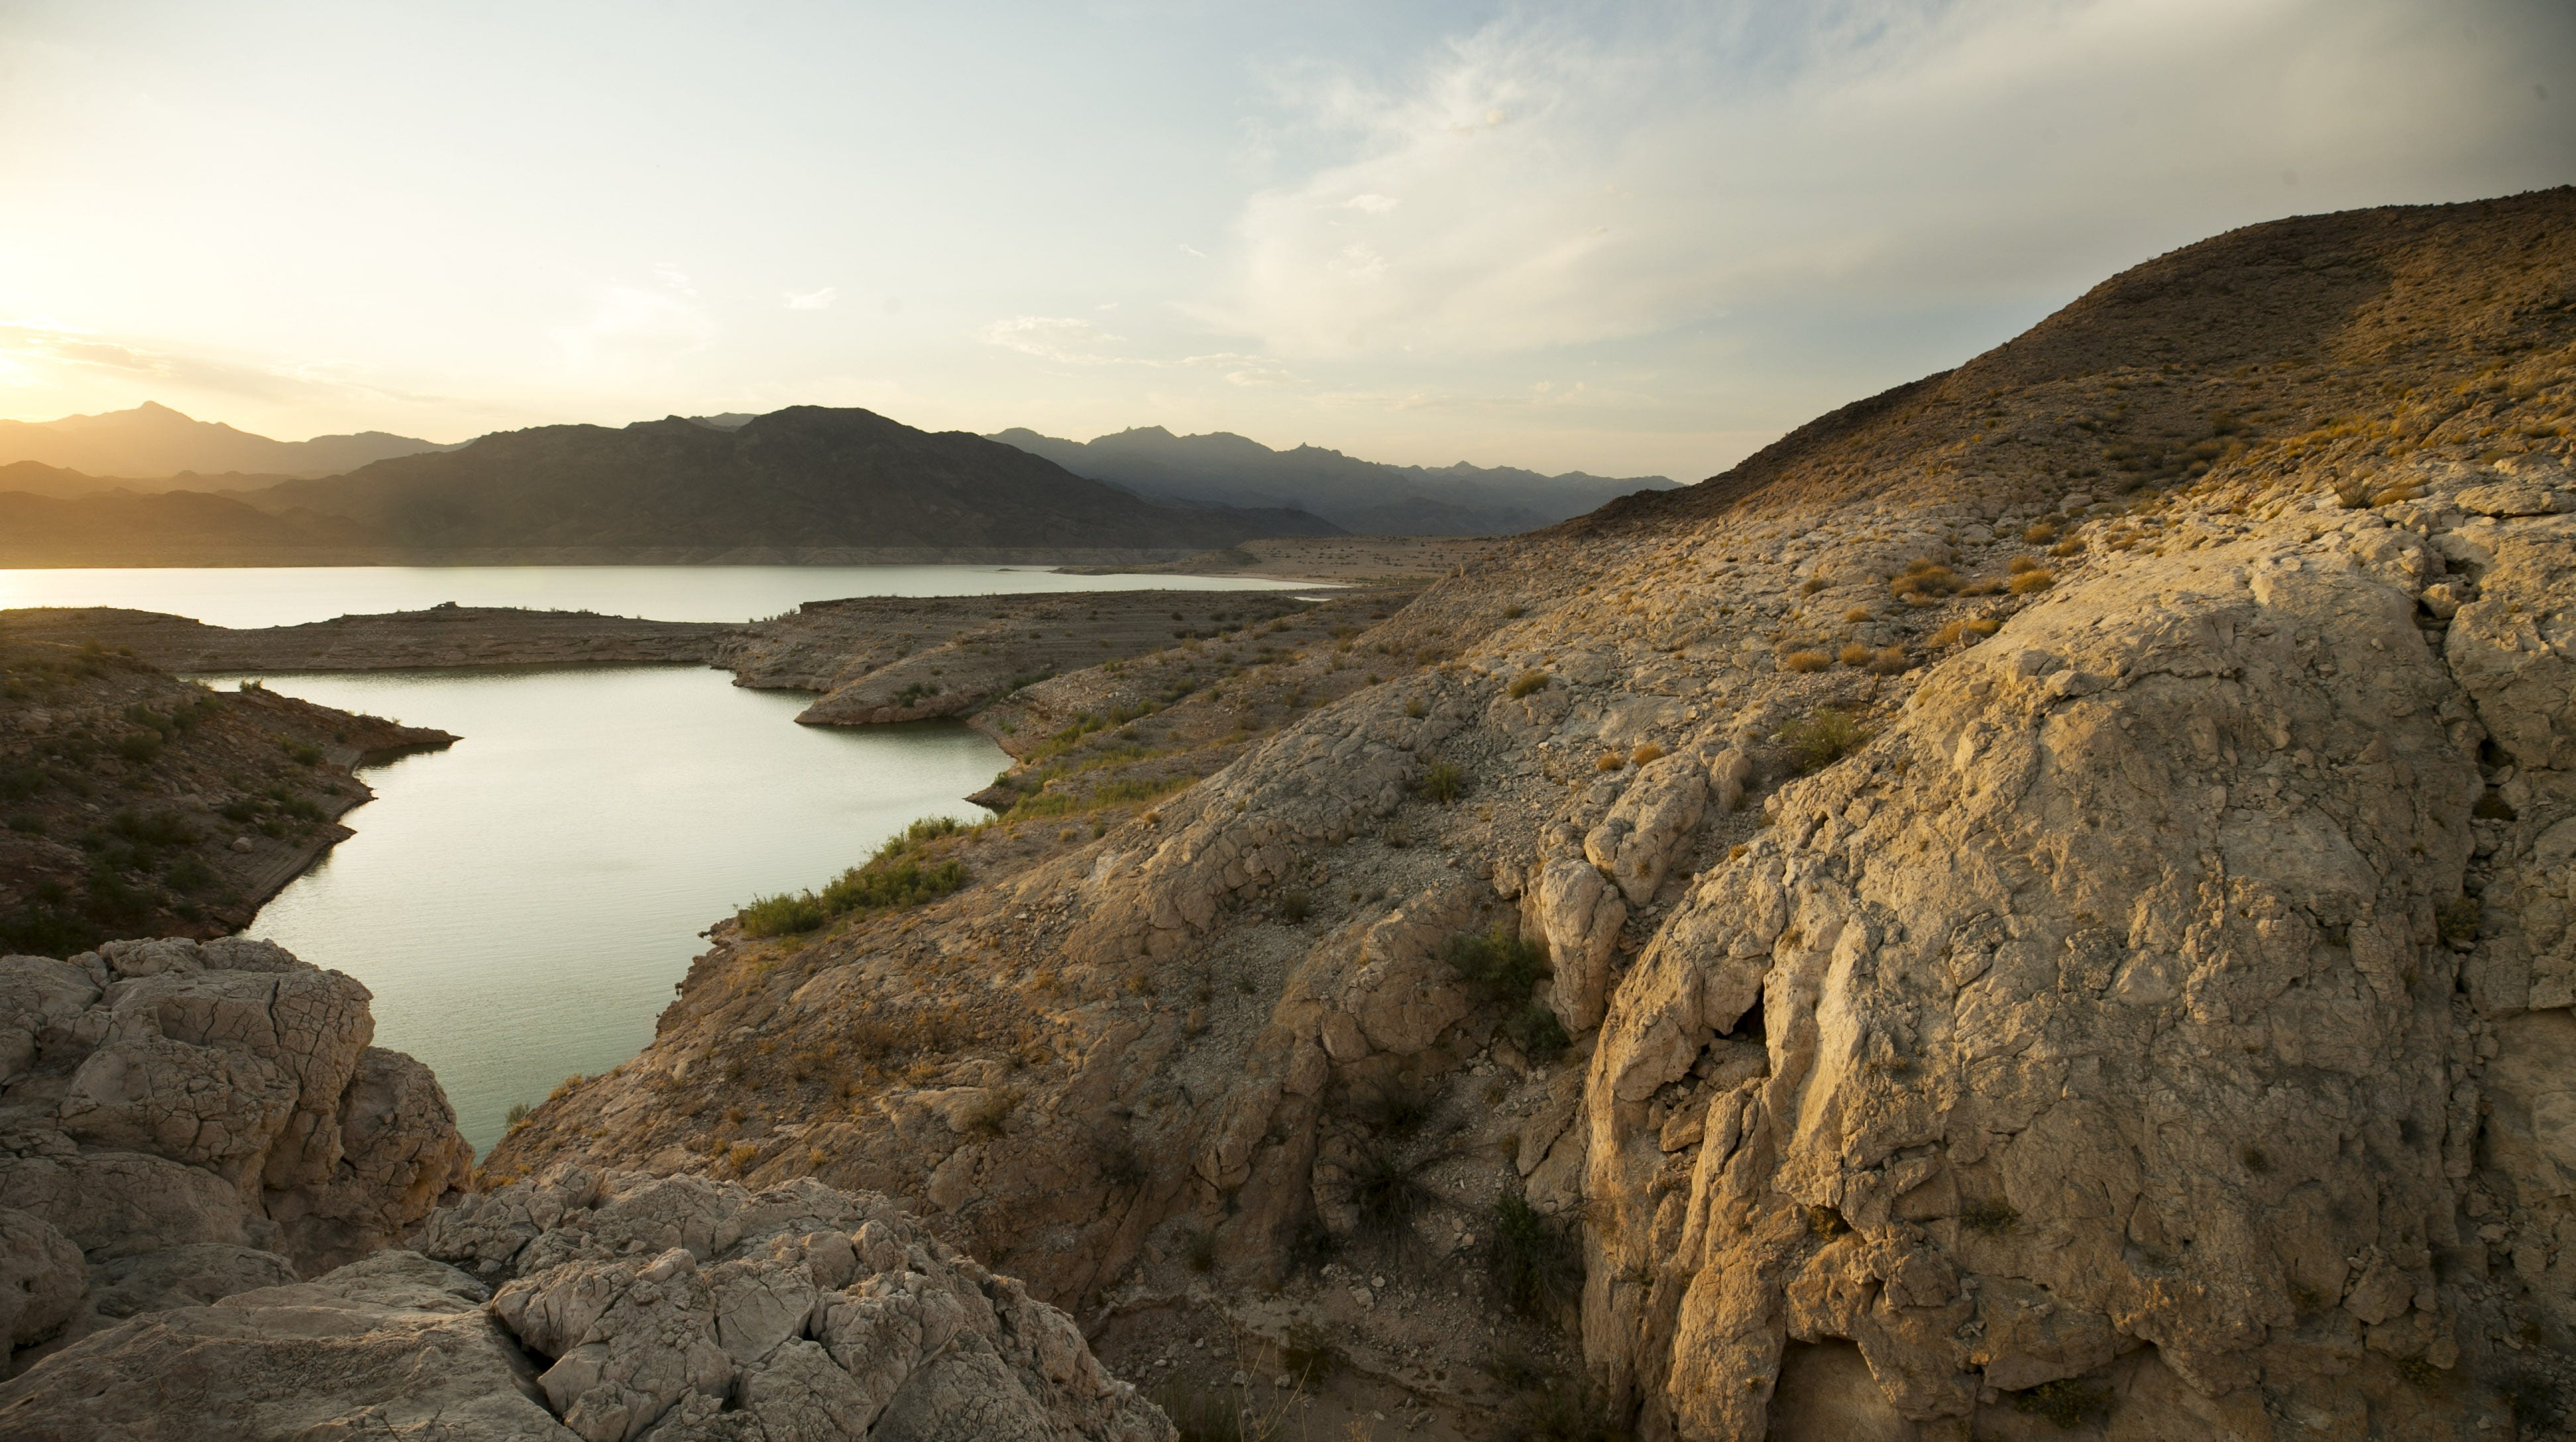 A line along a cliff illustrates where the surface of Lake Mead once stood near South Cove in the Lake Mead National Recreation Area on Aug. 1, 2018. Lake levels are at or near historic lows.